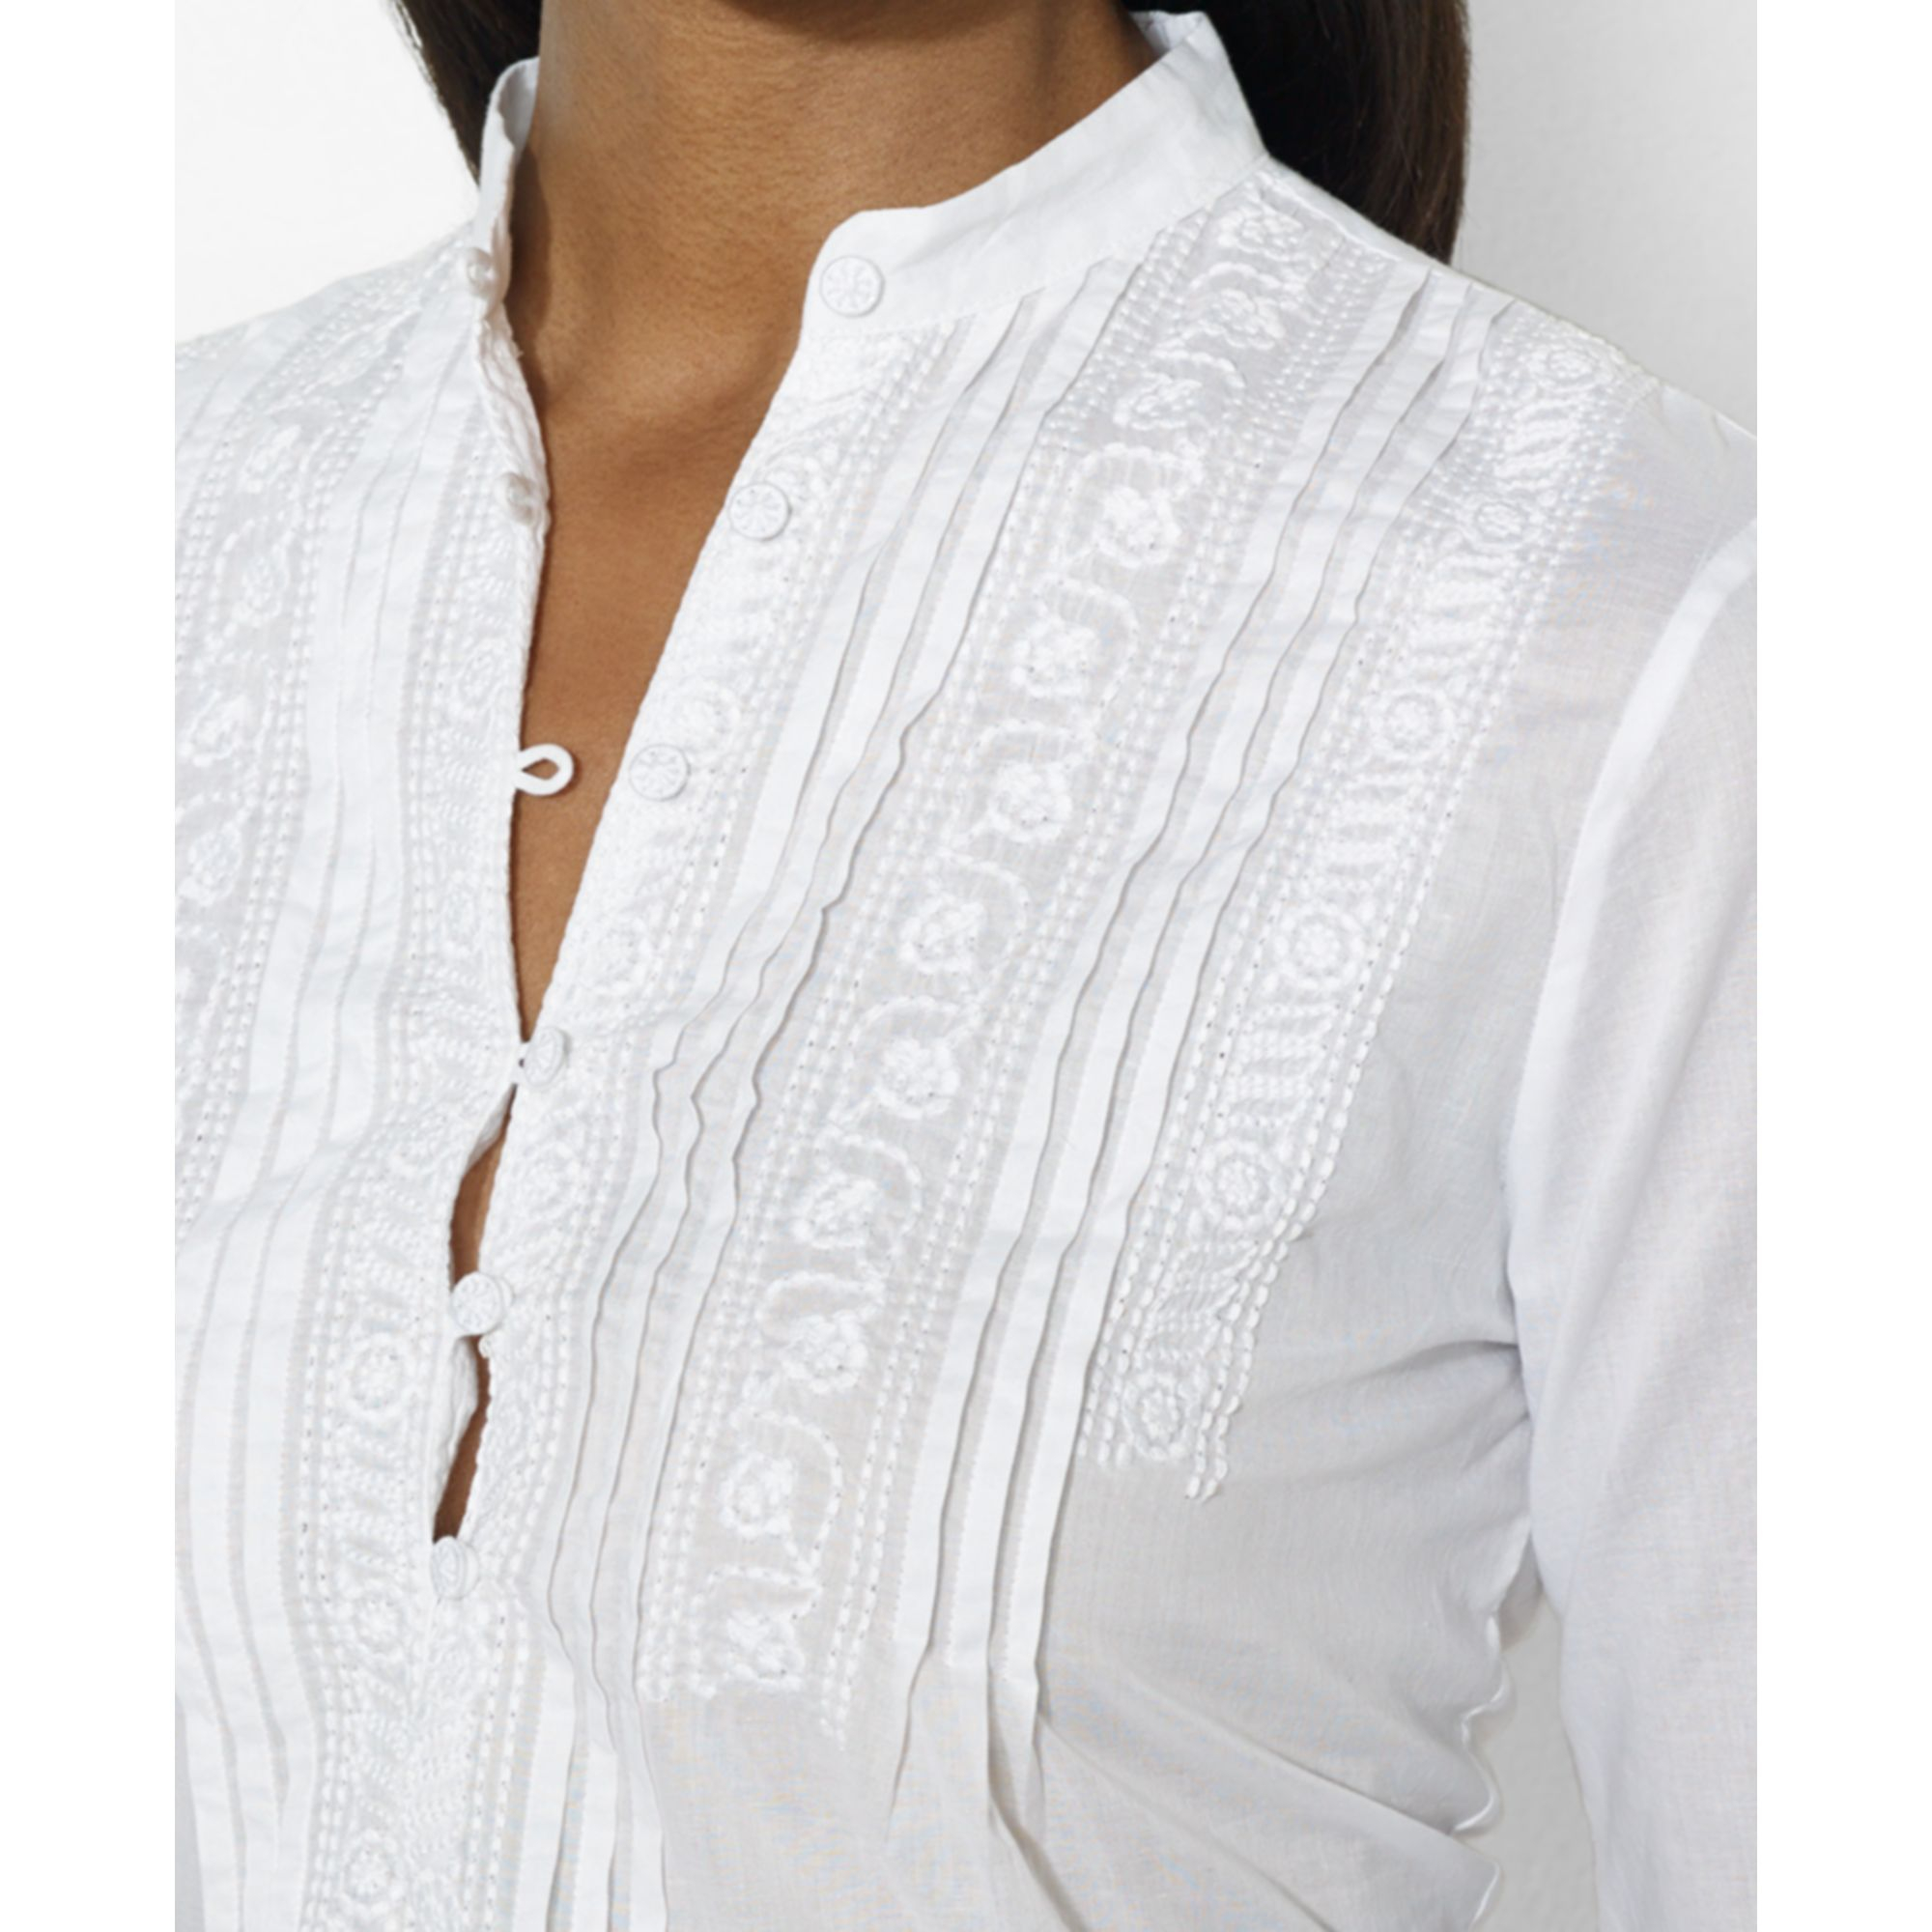 lauren by ralph lauren longsleeve embroidered standcollar blouse in white lyst. Black Bedroom Furniture Sets. Home Design Ideas